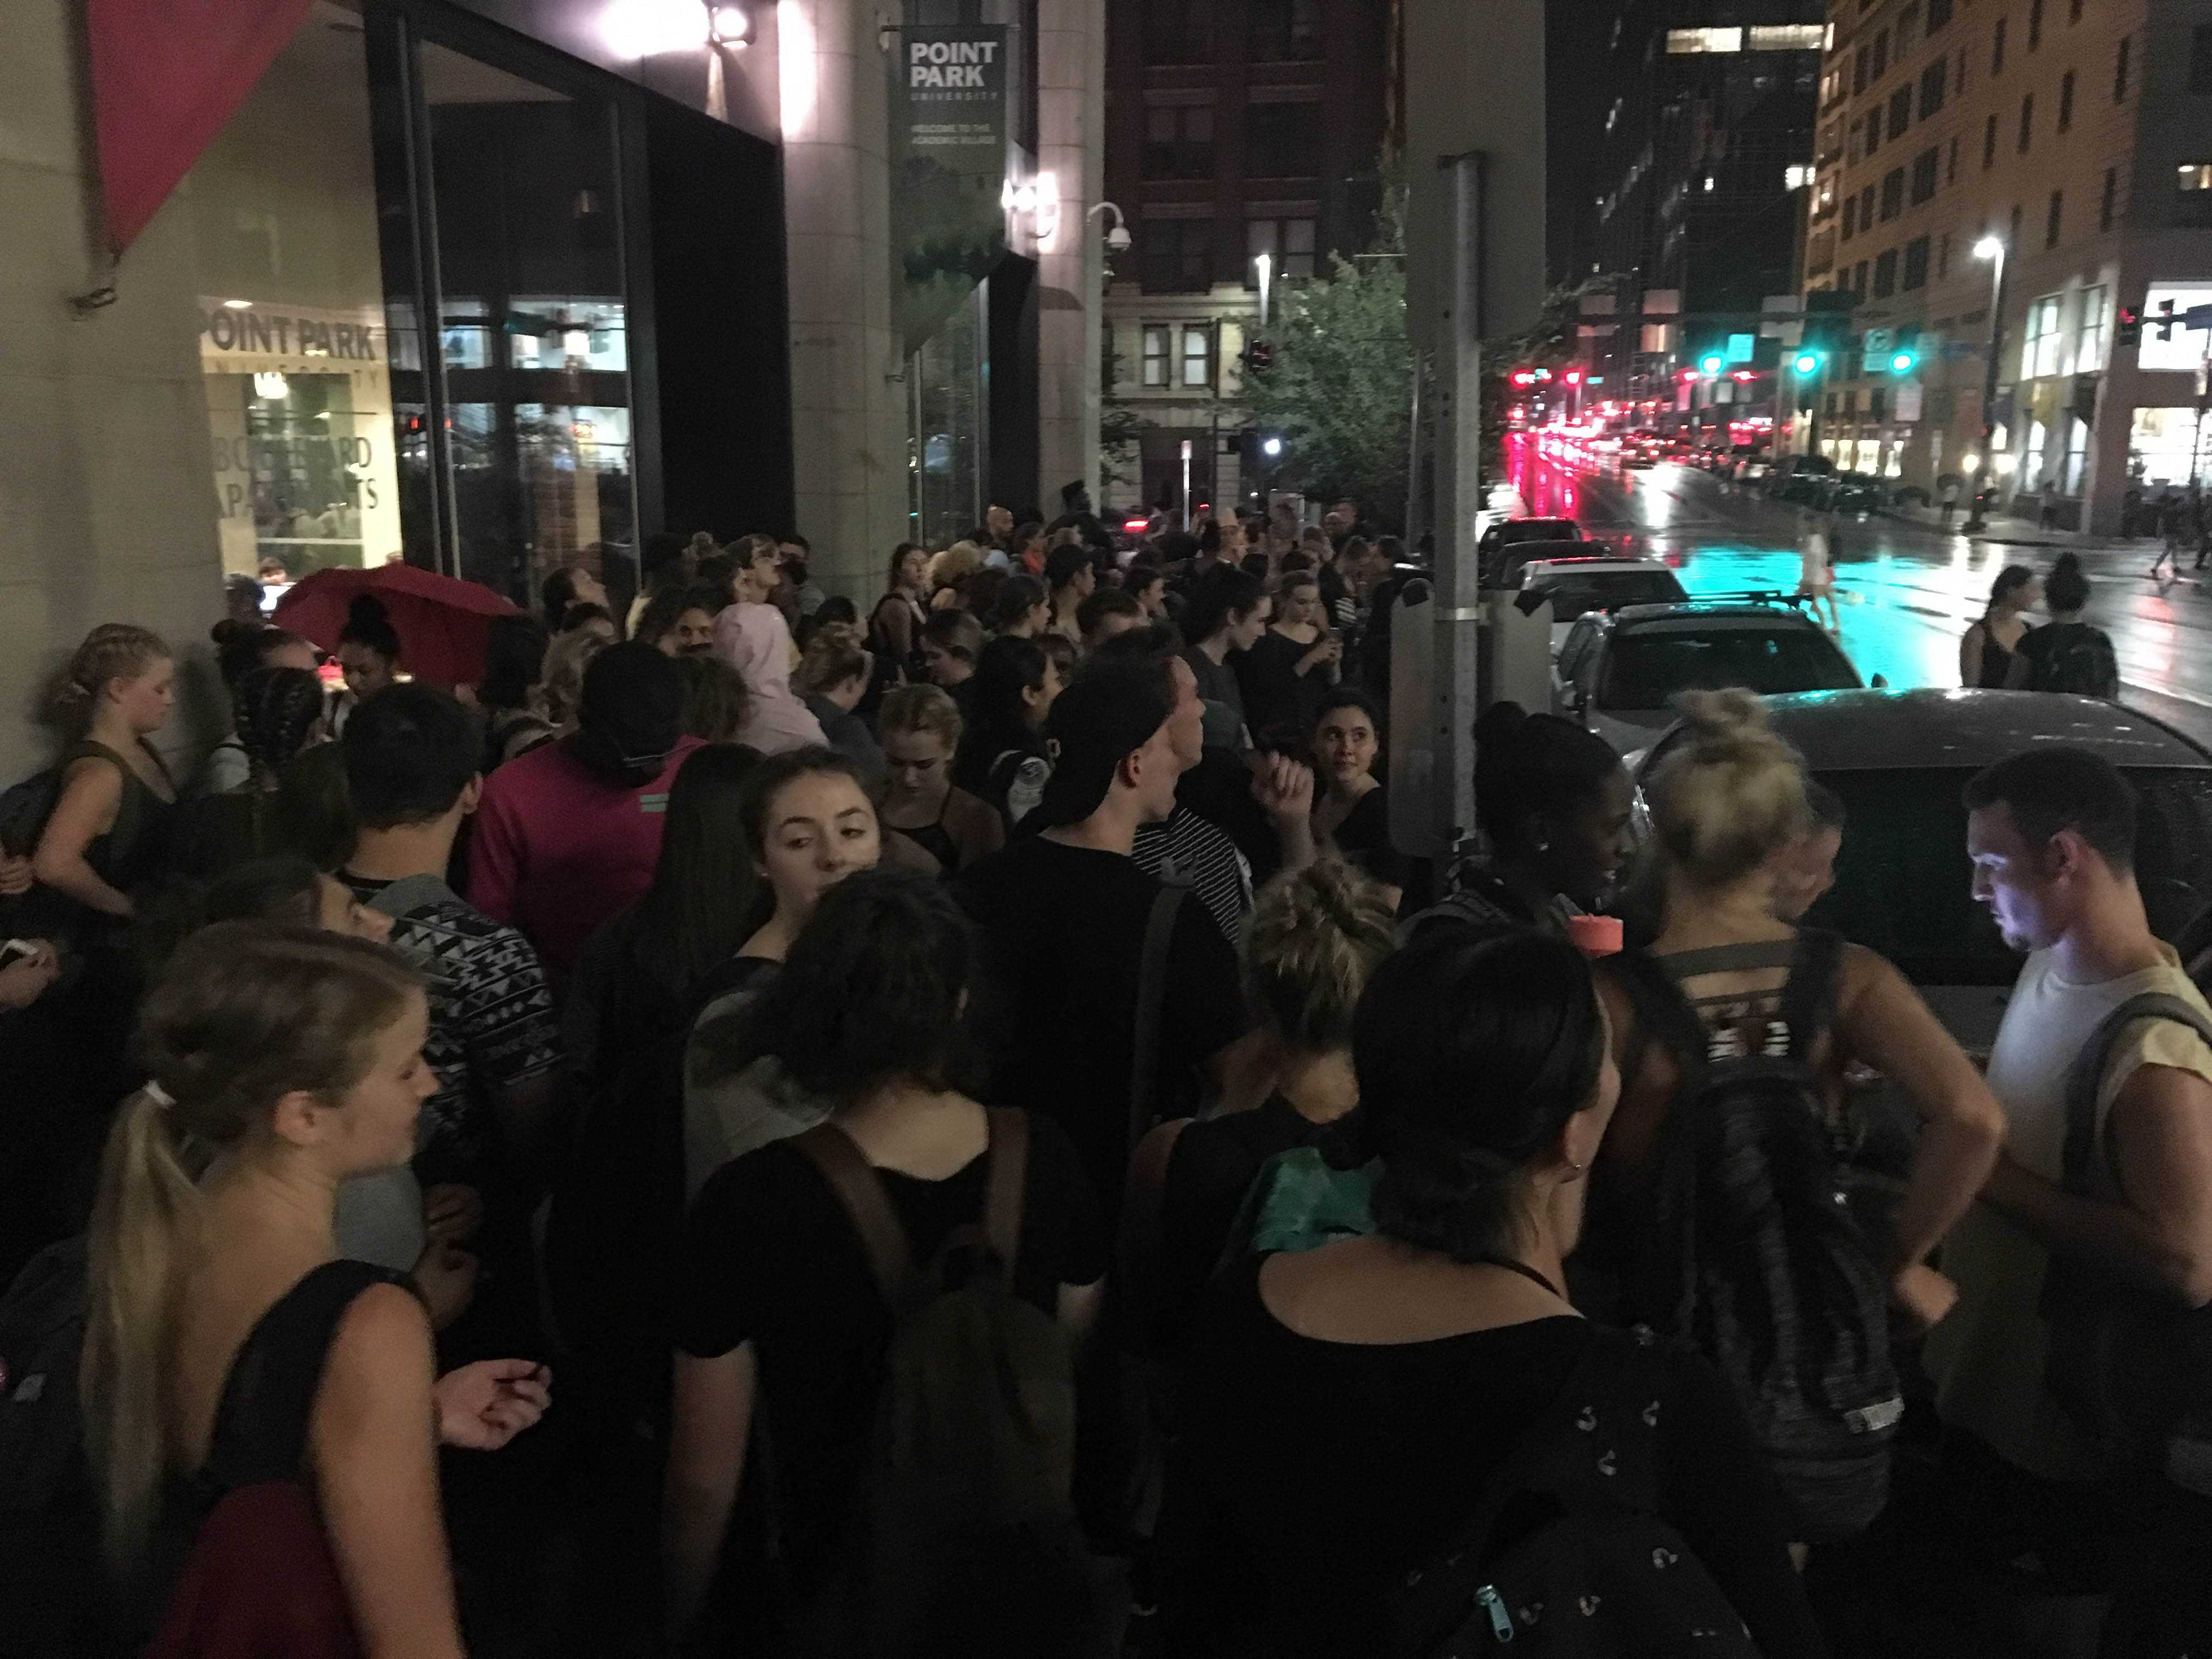 Students+gather+outside+the+Boulevard+Apartments+after+evacuating+Lawrence+Hall+Wednesday+night+due+to+a+fire+alarm+caused+by+a+cotton+candy+machine+at+CAB%27s+movie+night.